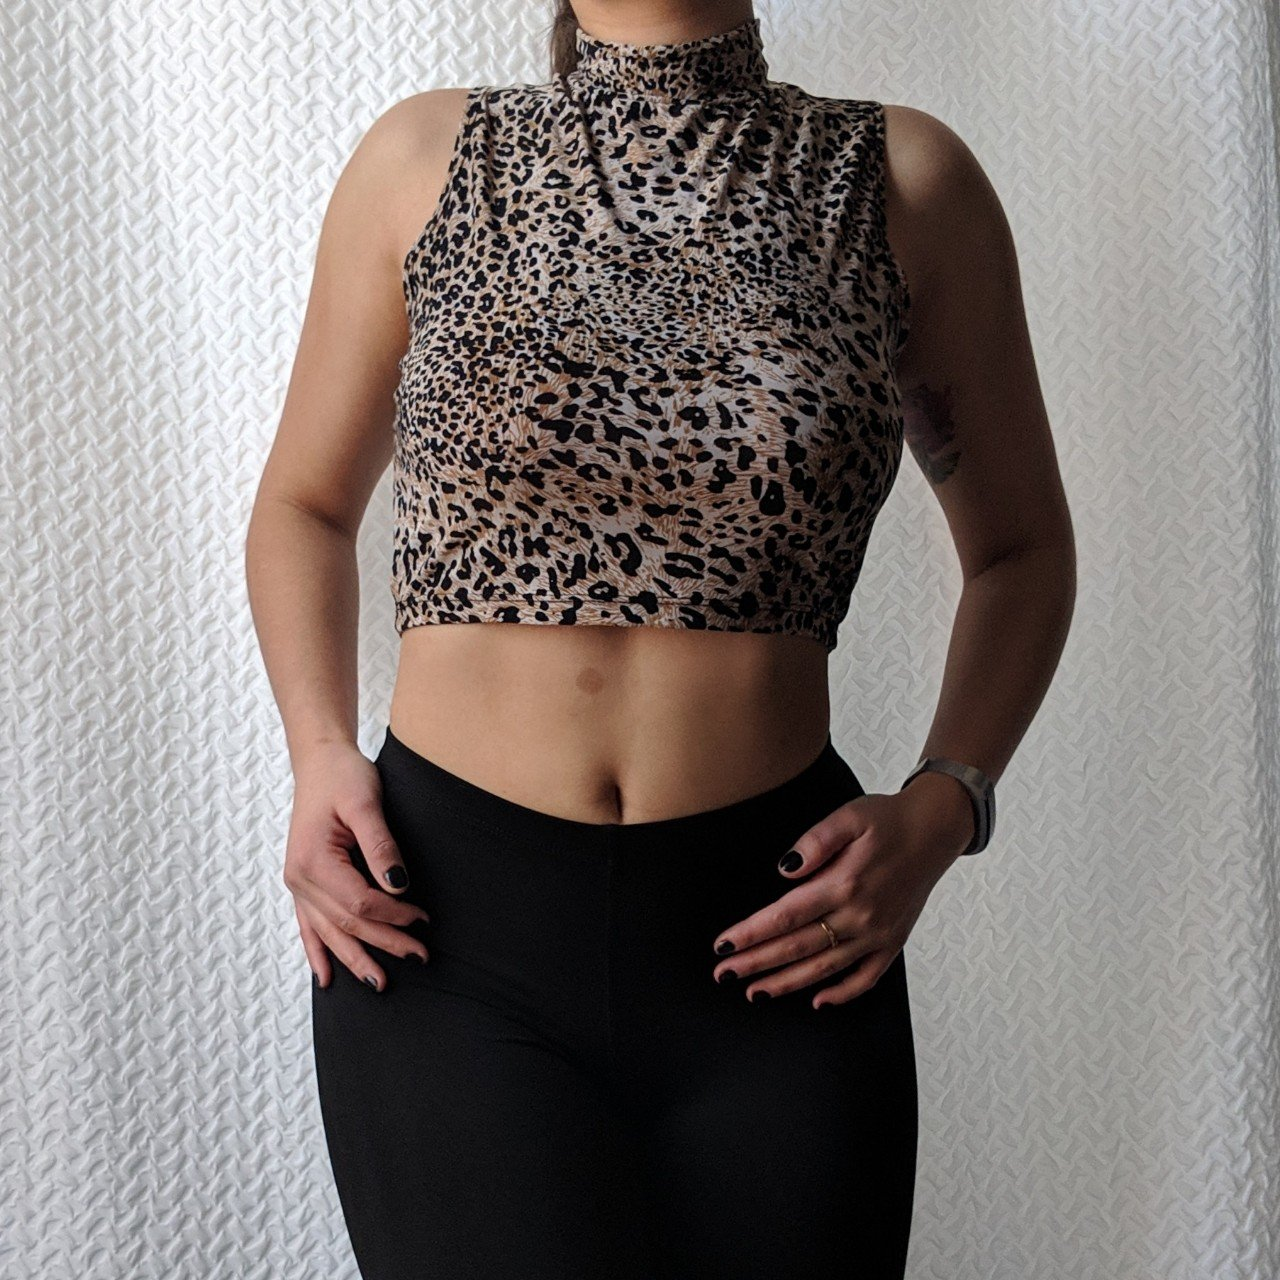 81d7f37b96a49 F21 Leopard Crop Keyhole back Slinky and light Mock neck - Depop